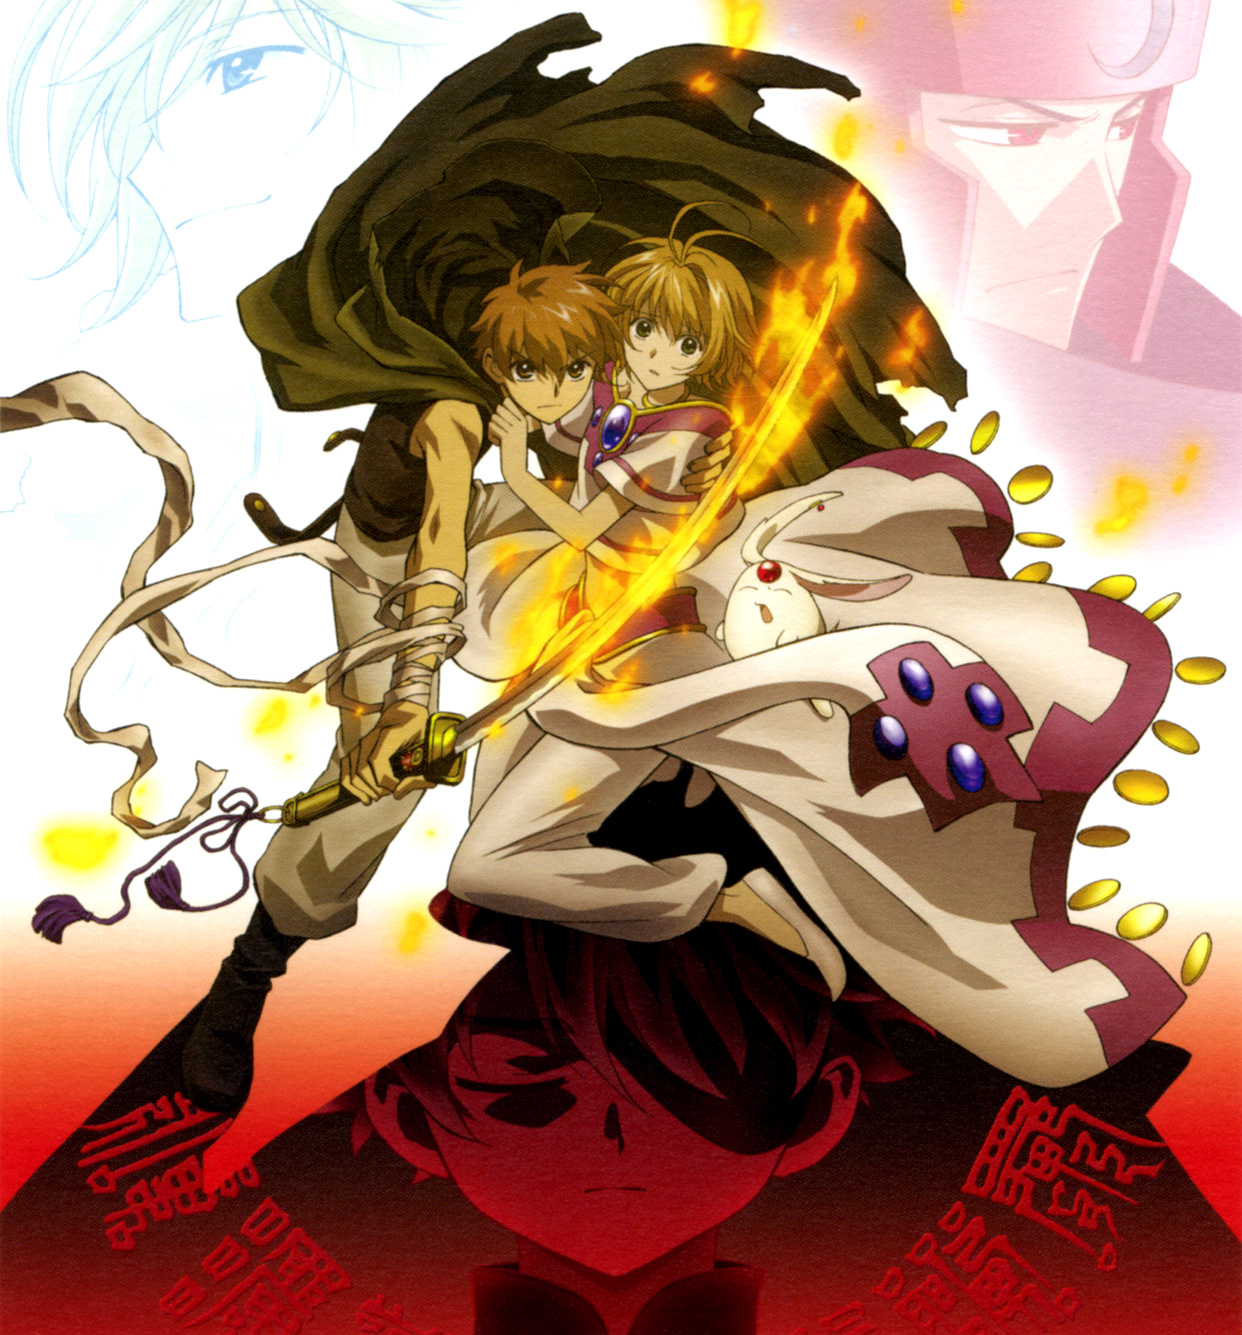 Tsubasa Reservoir Chronicle 1510194: Tsubasa Reservoir Chronicle: Sword Of Fire